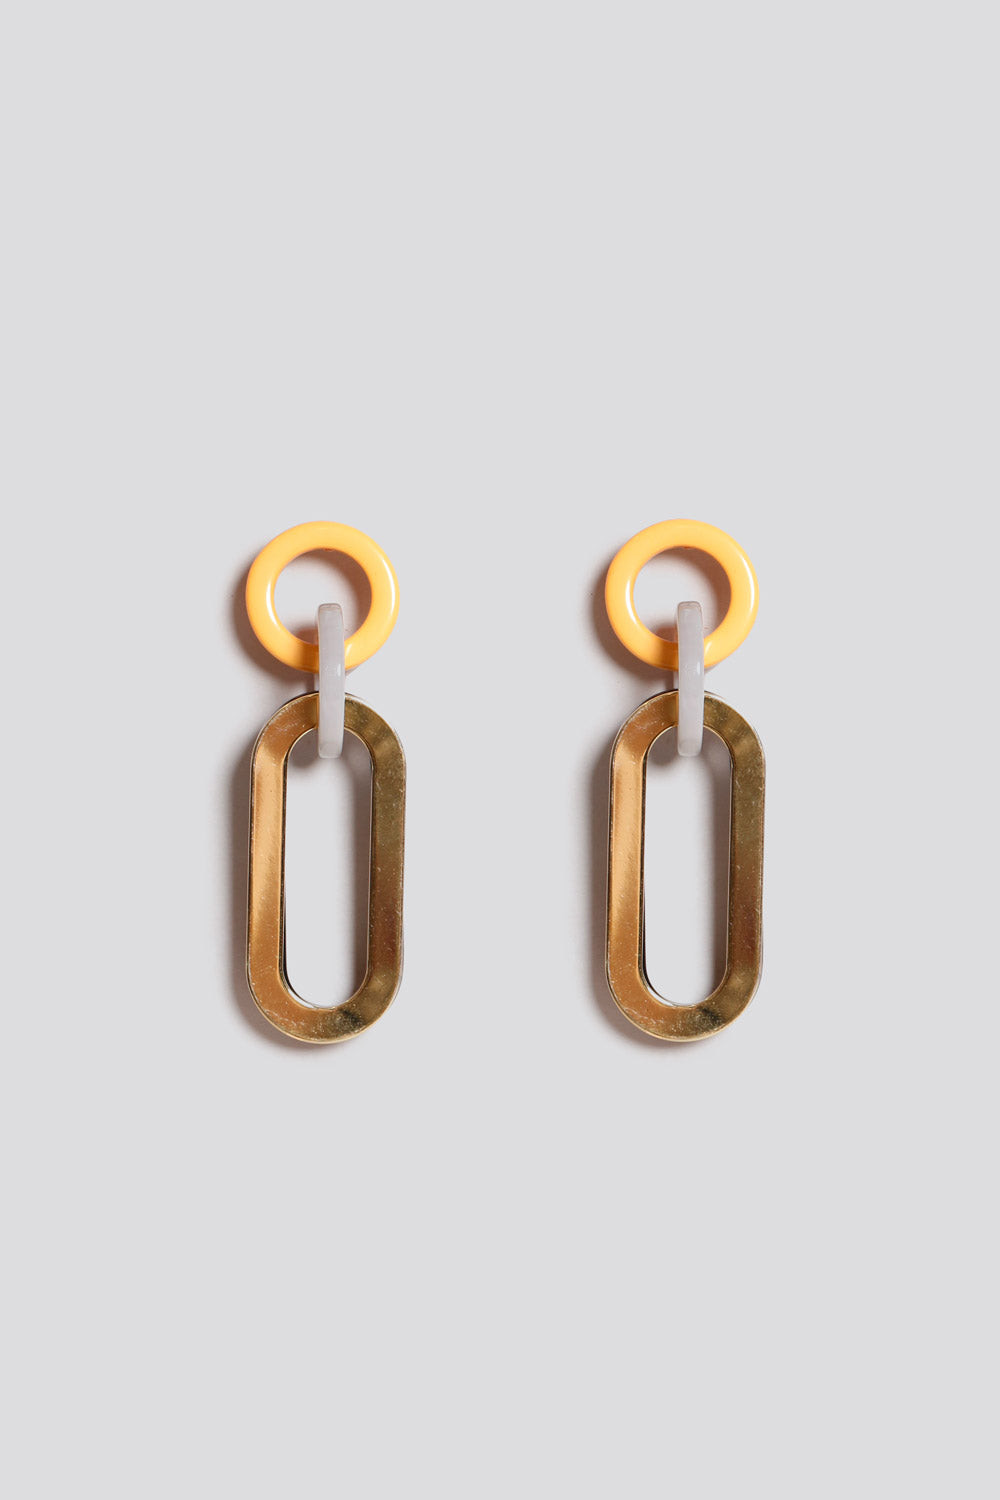 Sour Earrings in Yellow Gold